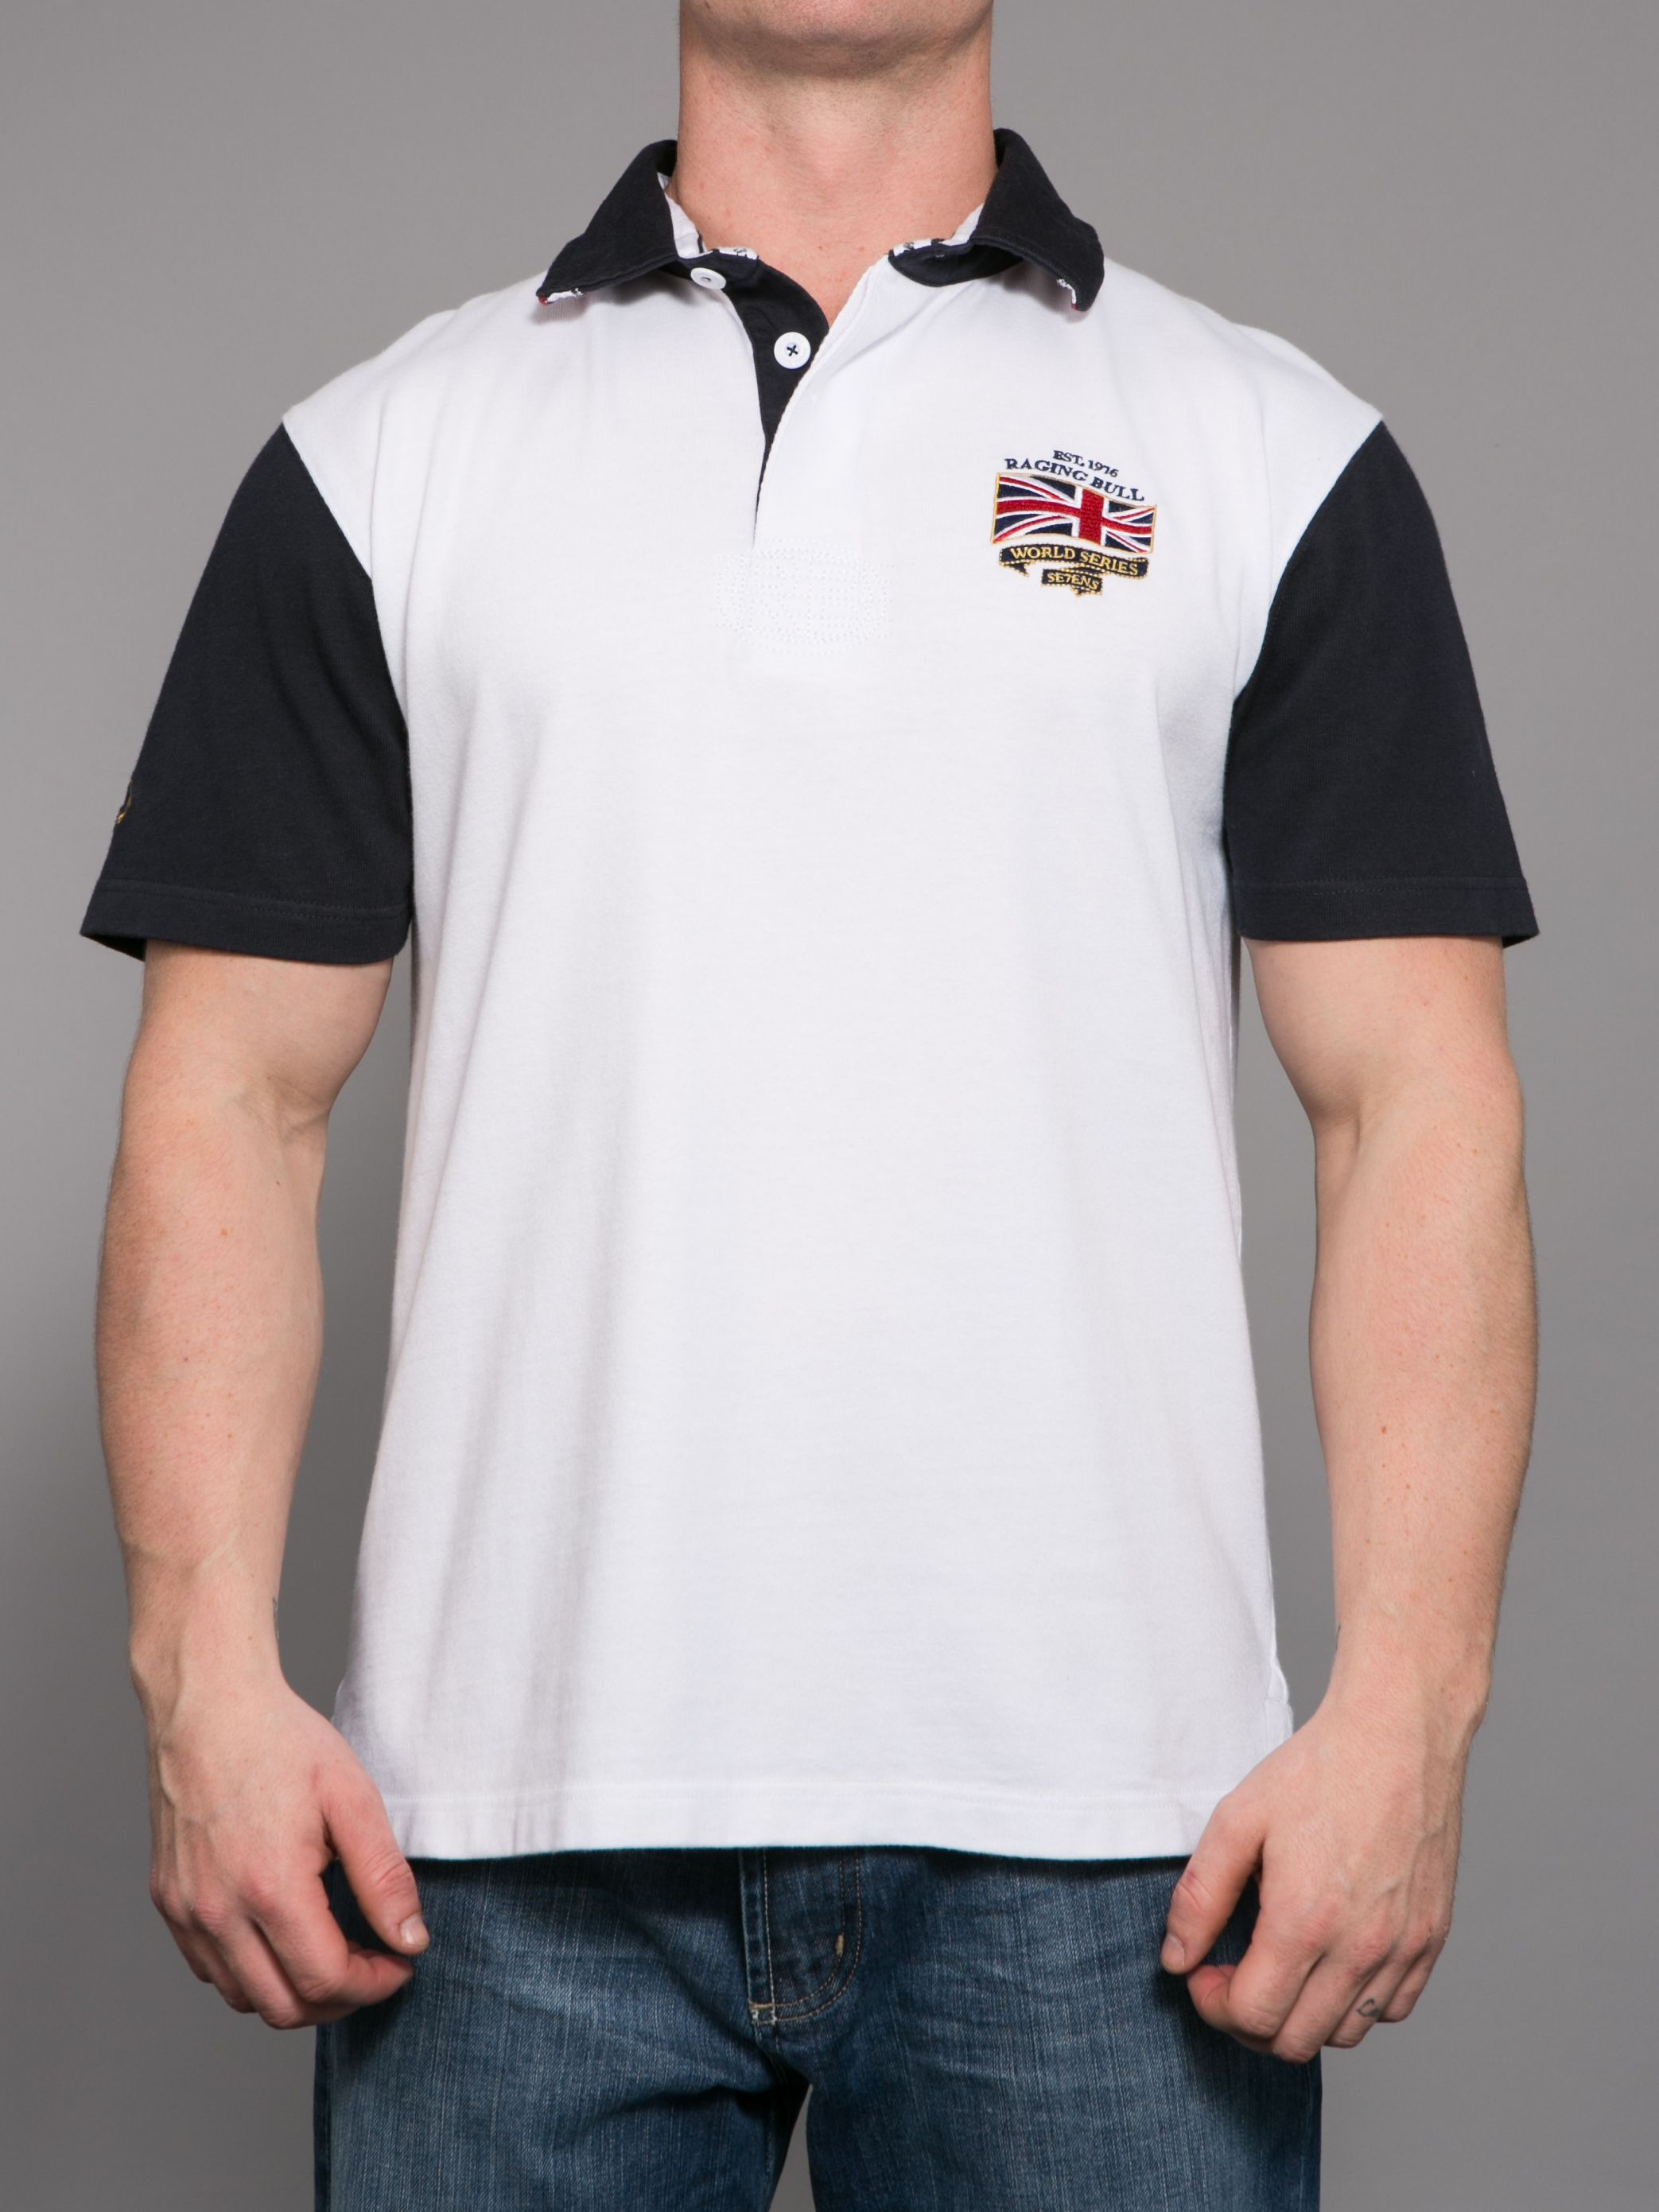 Union Jack embellished rugby shirt